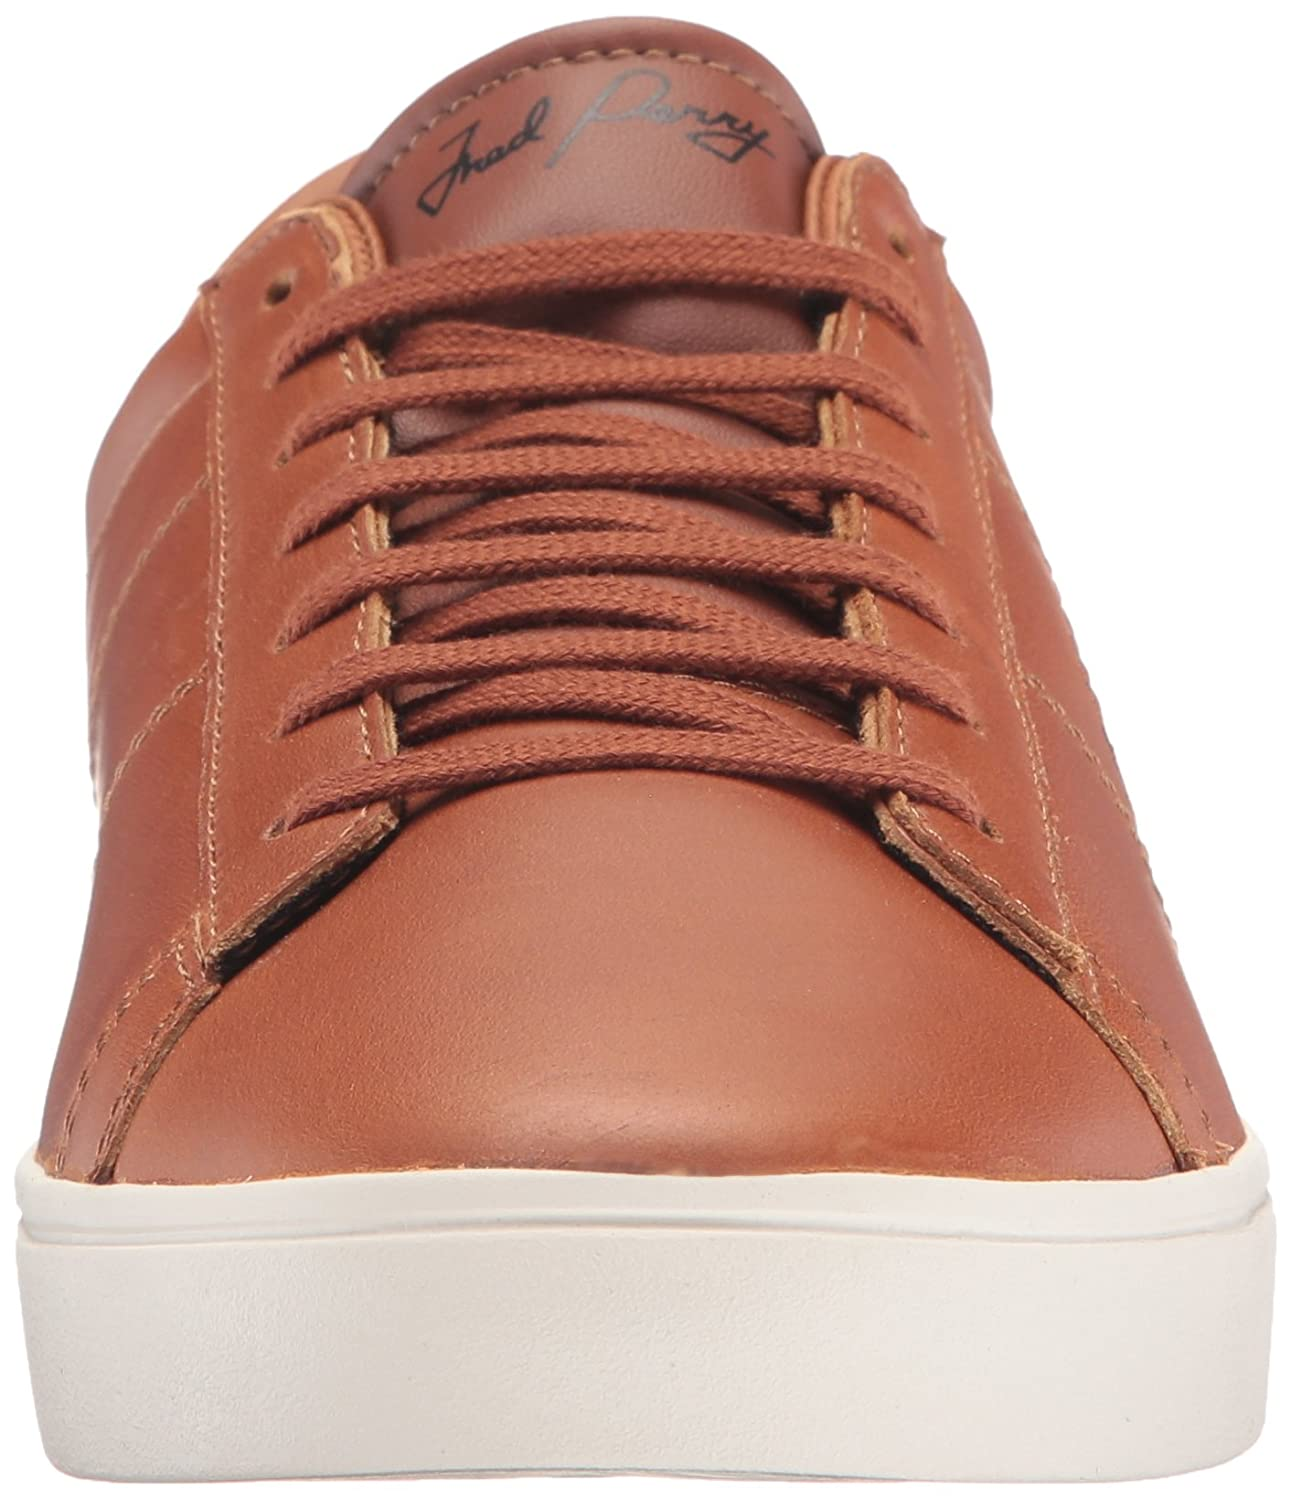 Fred Perry Spencer Waxed Leather Sneaker B06X91C8XN 5 D UK (6 US) Tan